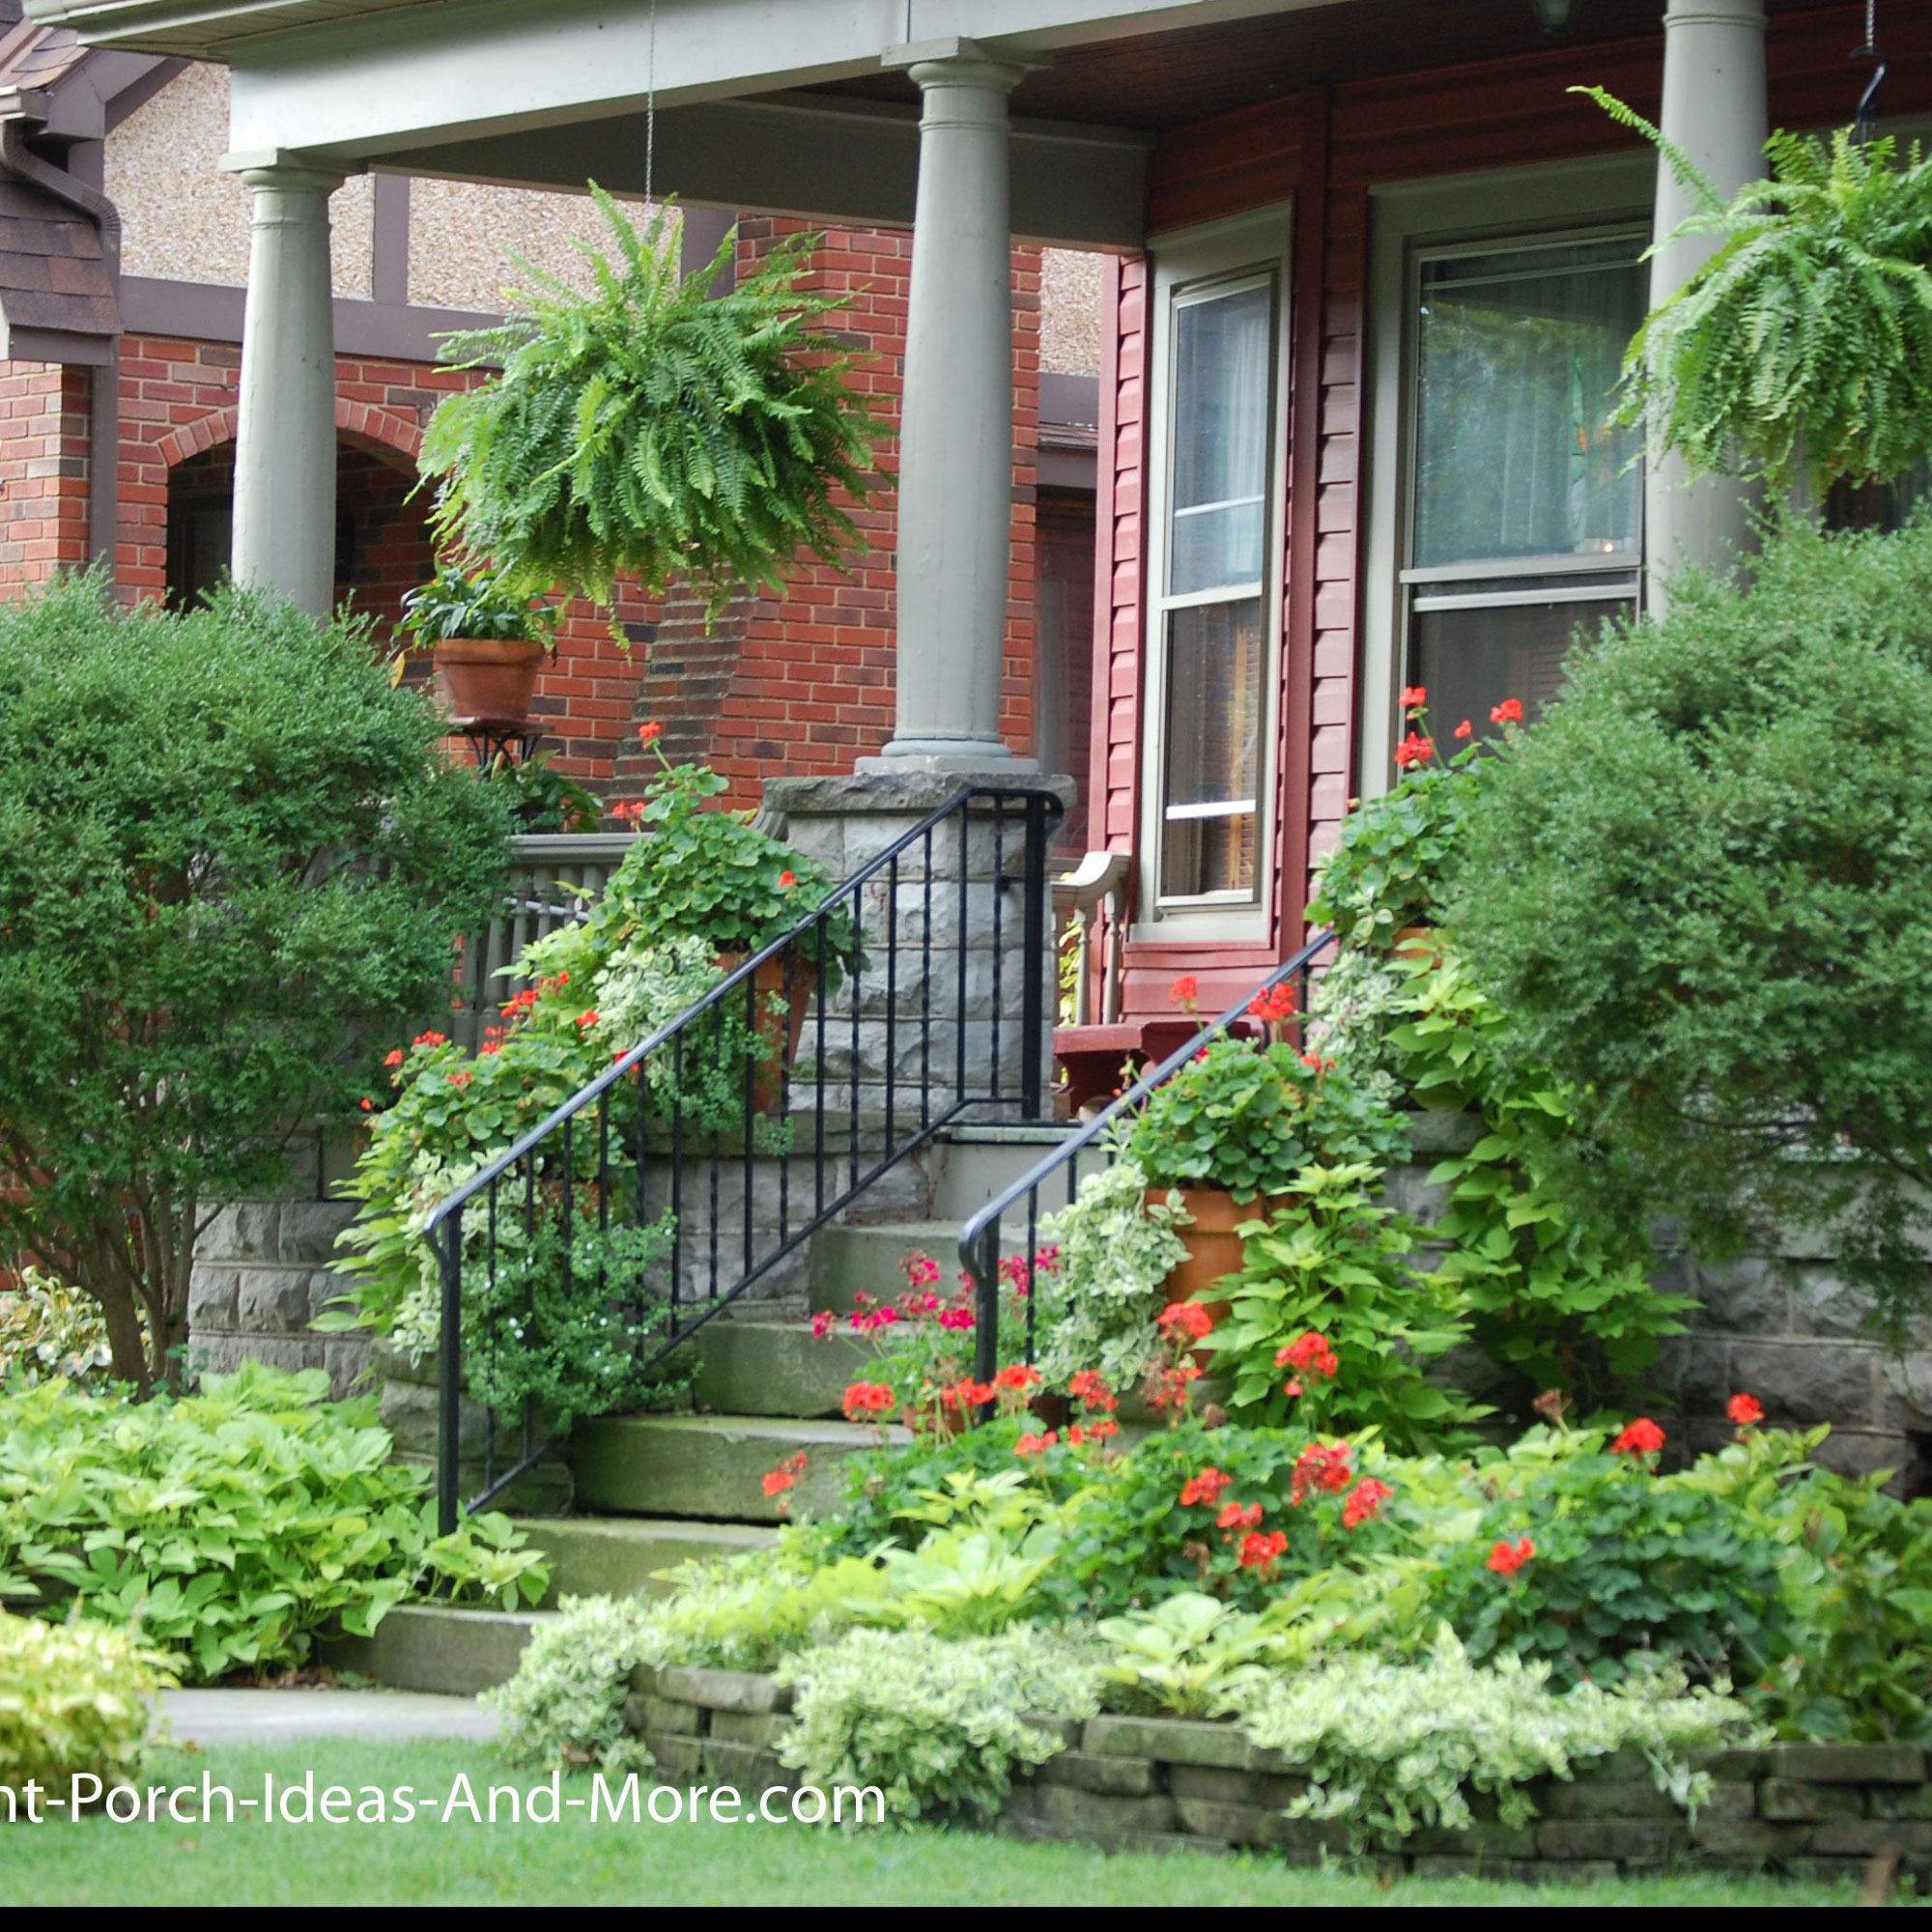 Porch landscaping ideas for your front yard and more for Small front porch landscaping ideas